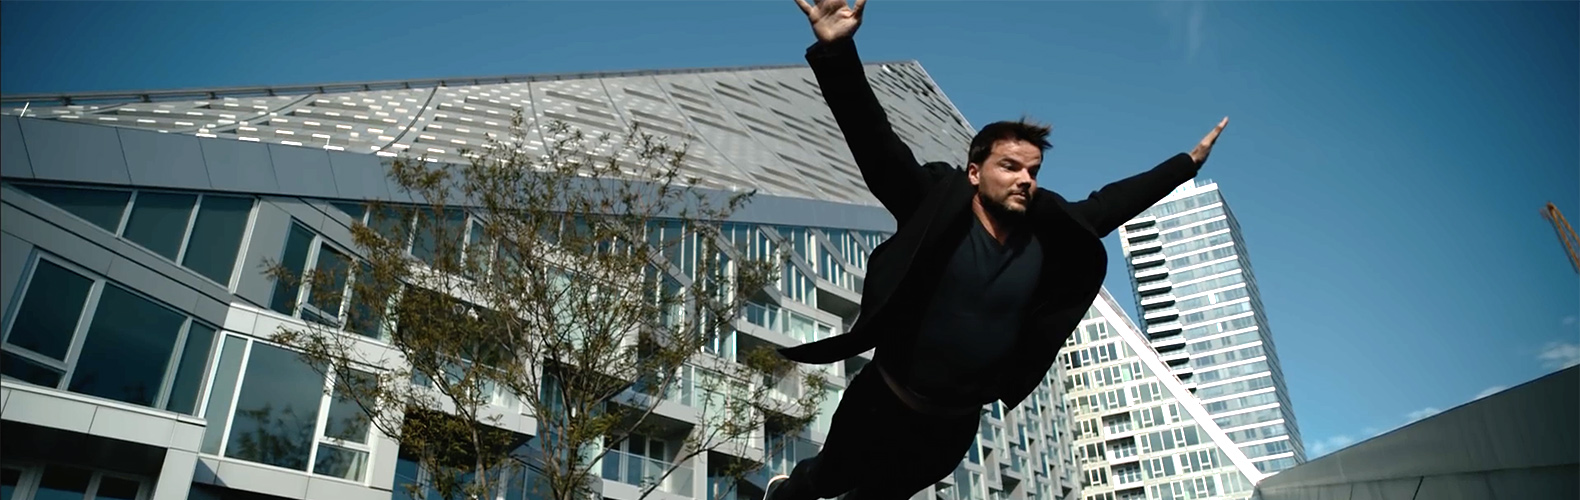 Bjarke Ingels And Other Outstanding Designers Star In A New Netflix Series Called Absract Abstract The Art Of Design Inhabitat